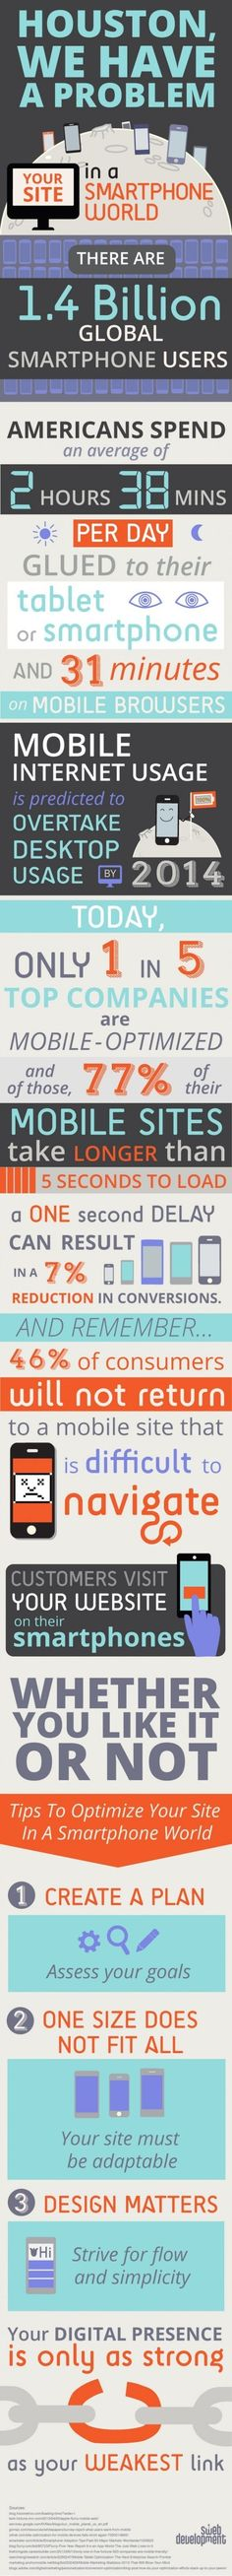 Your Website In A Smartphone World - #mobile #web #infographic